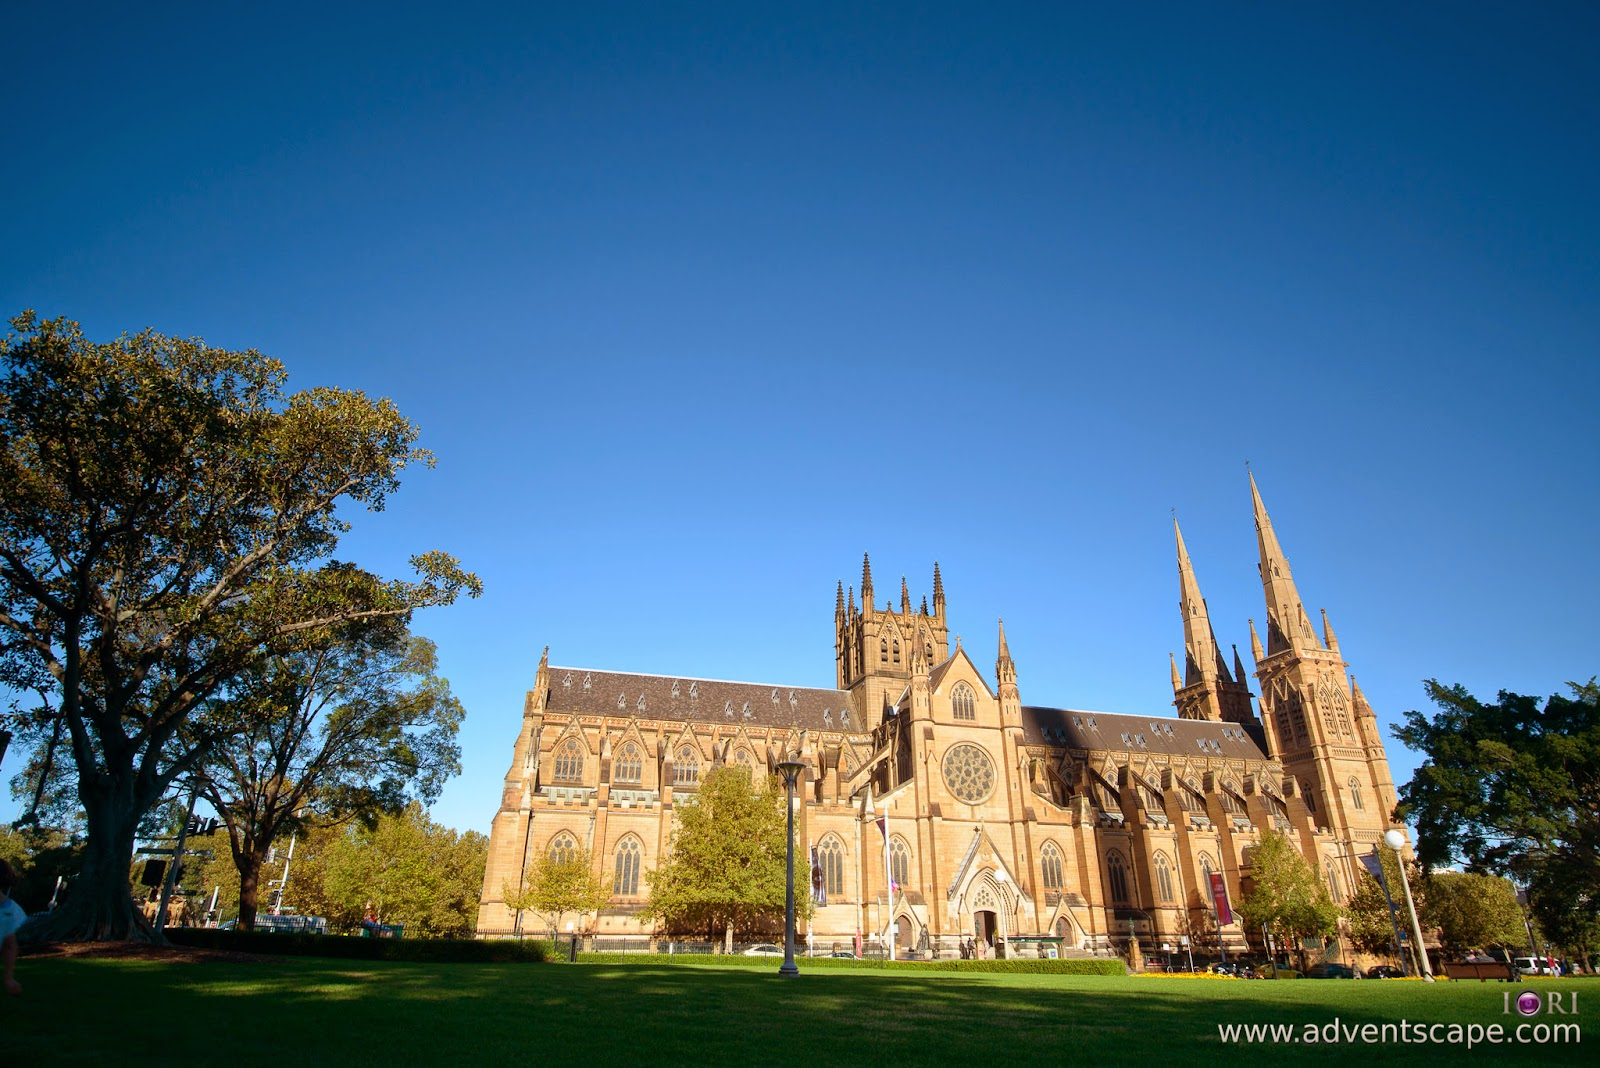 Philip Avellana, Australian Landscape Photographer, NSW, New South Wales, Sydney, Australia, St Mary's Cathedral, church, comparison, review, glass vs resin, filters, Lee Filters, soft ND, ND, neutral density, graduated neutral density, GND, grad nd, resin, 0.9, 3 stops, Hitech